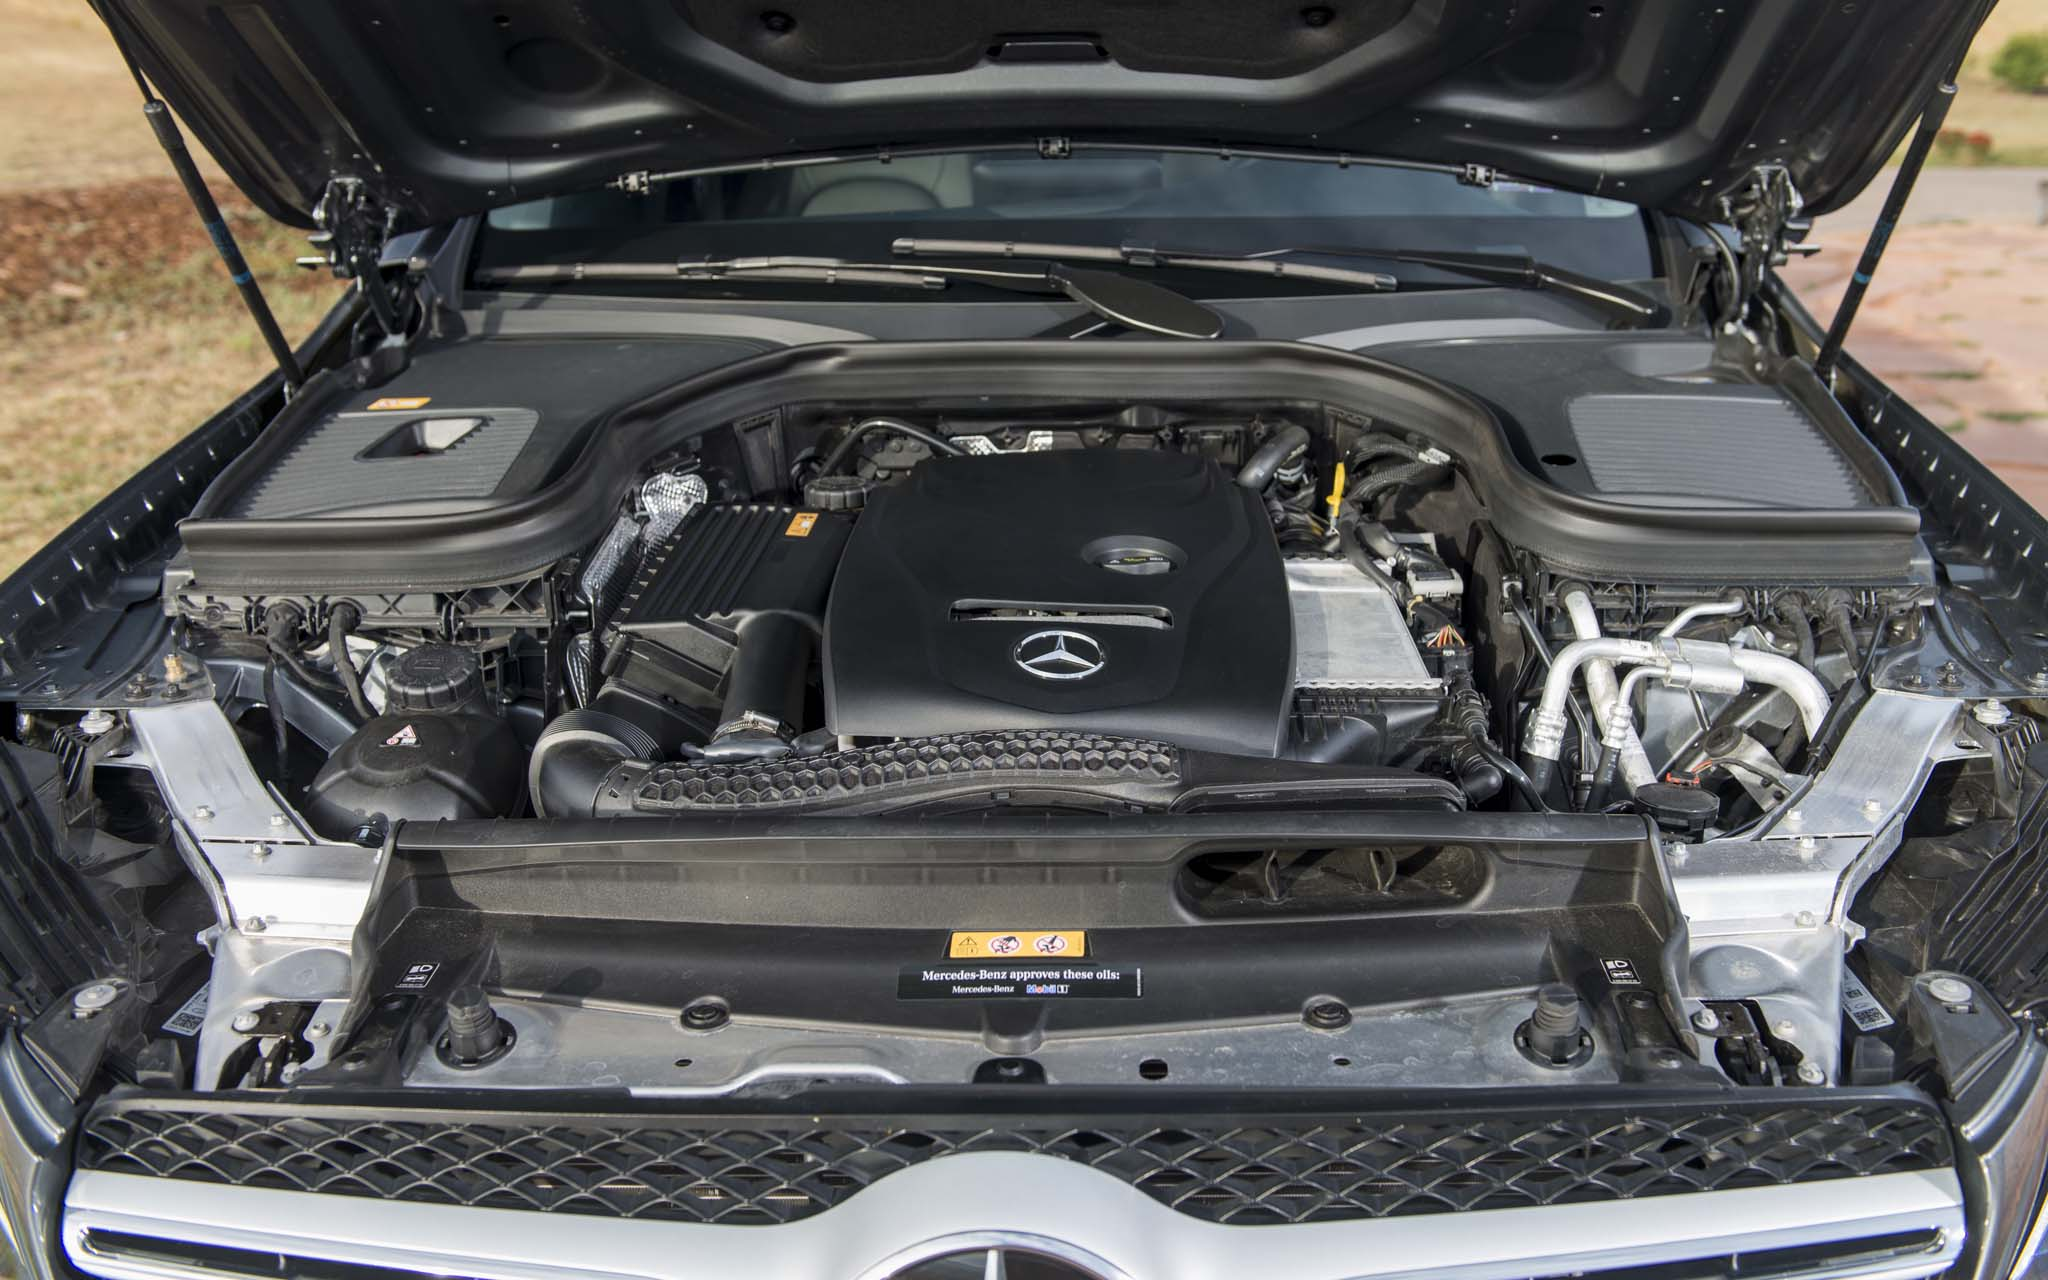 http://blog.militaryautosource.com/wp-content/uploads/sites/5/2017/01/2016-Mercedes-Benz-GLC-300-4Matic-engine-03.jpg